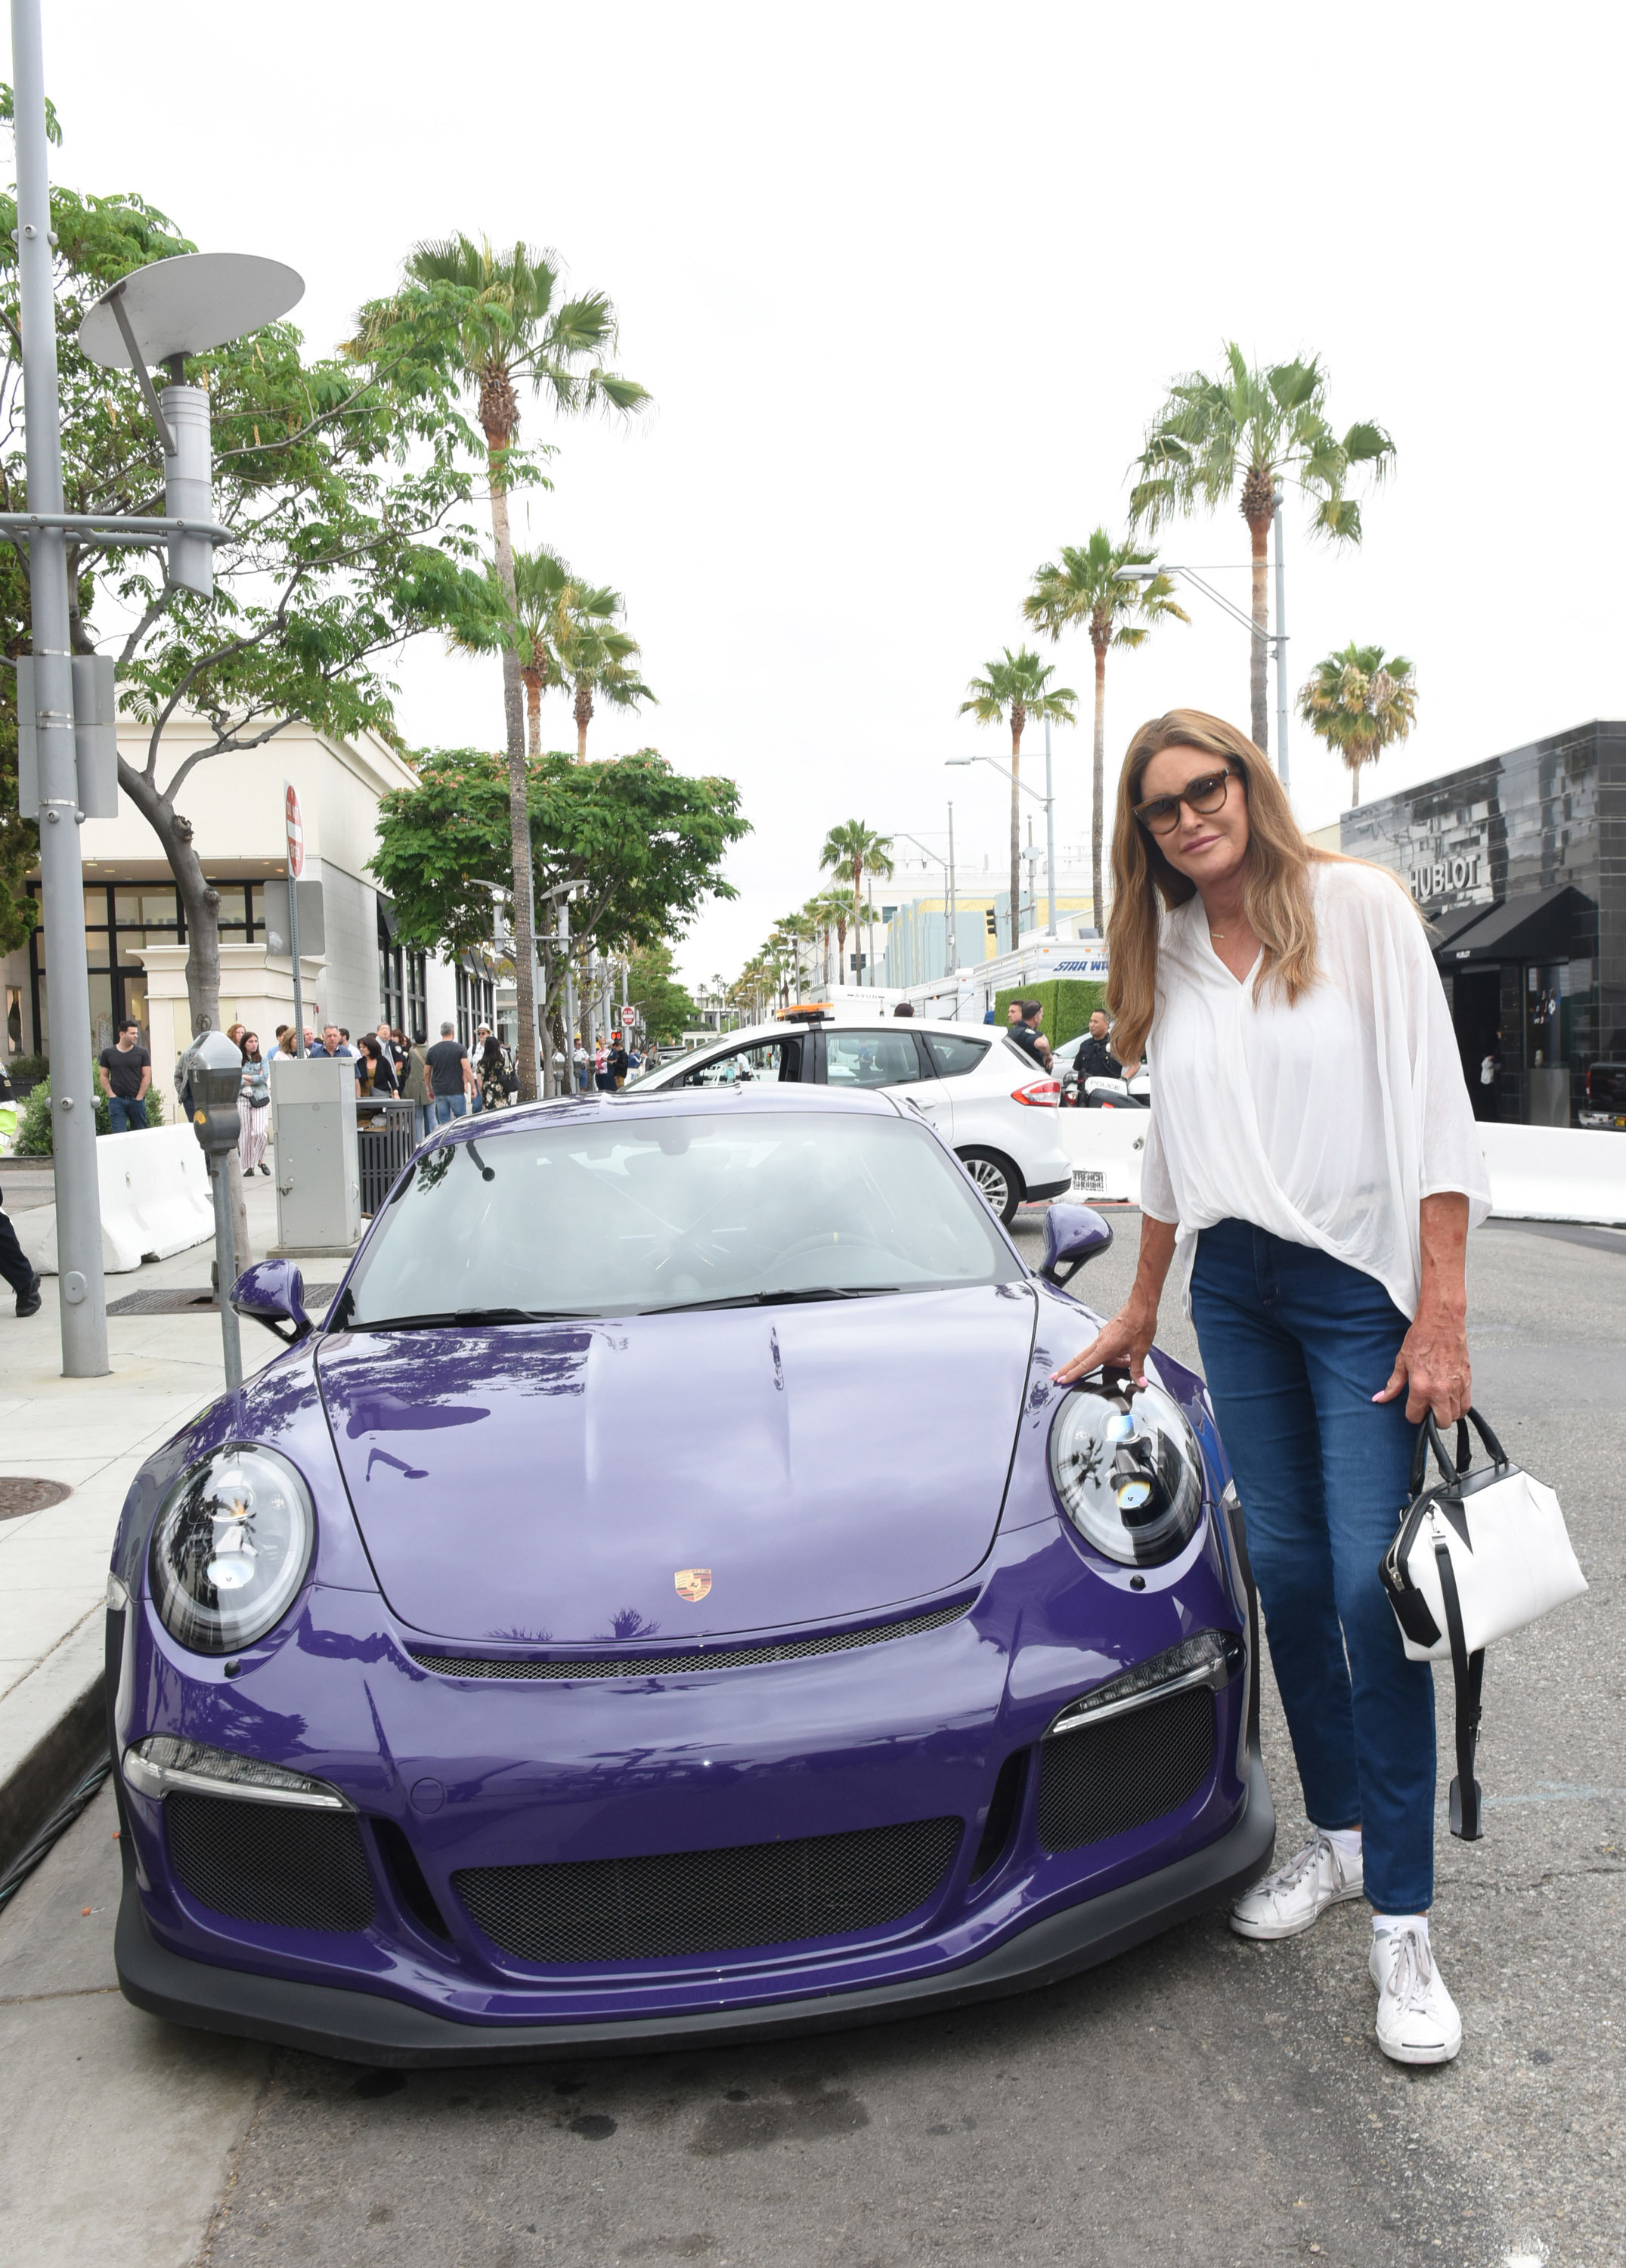 Caitlyn Jenner and her car at Rodeo Drive Concours d'Elegance Father's Day Car Show in Beverly Hills, California,  on June 17, 2018.